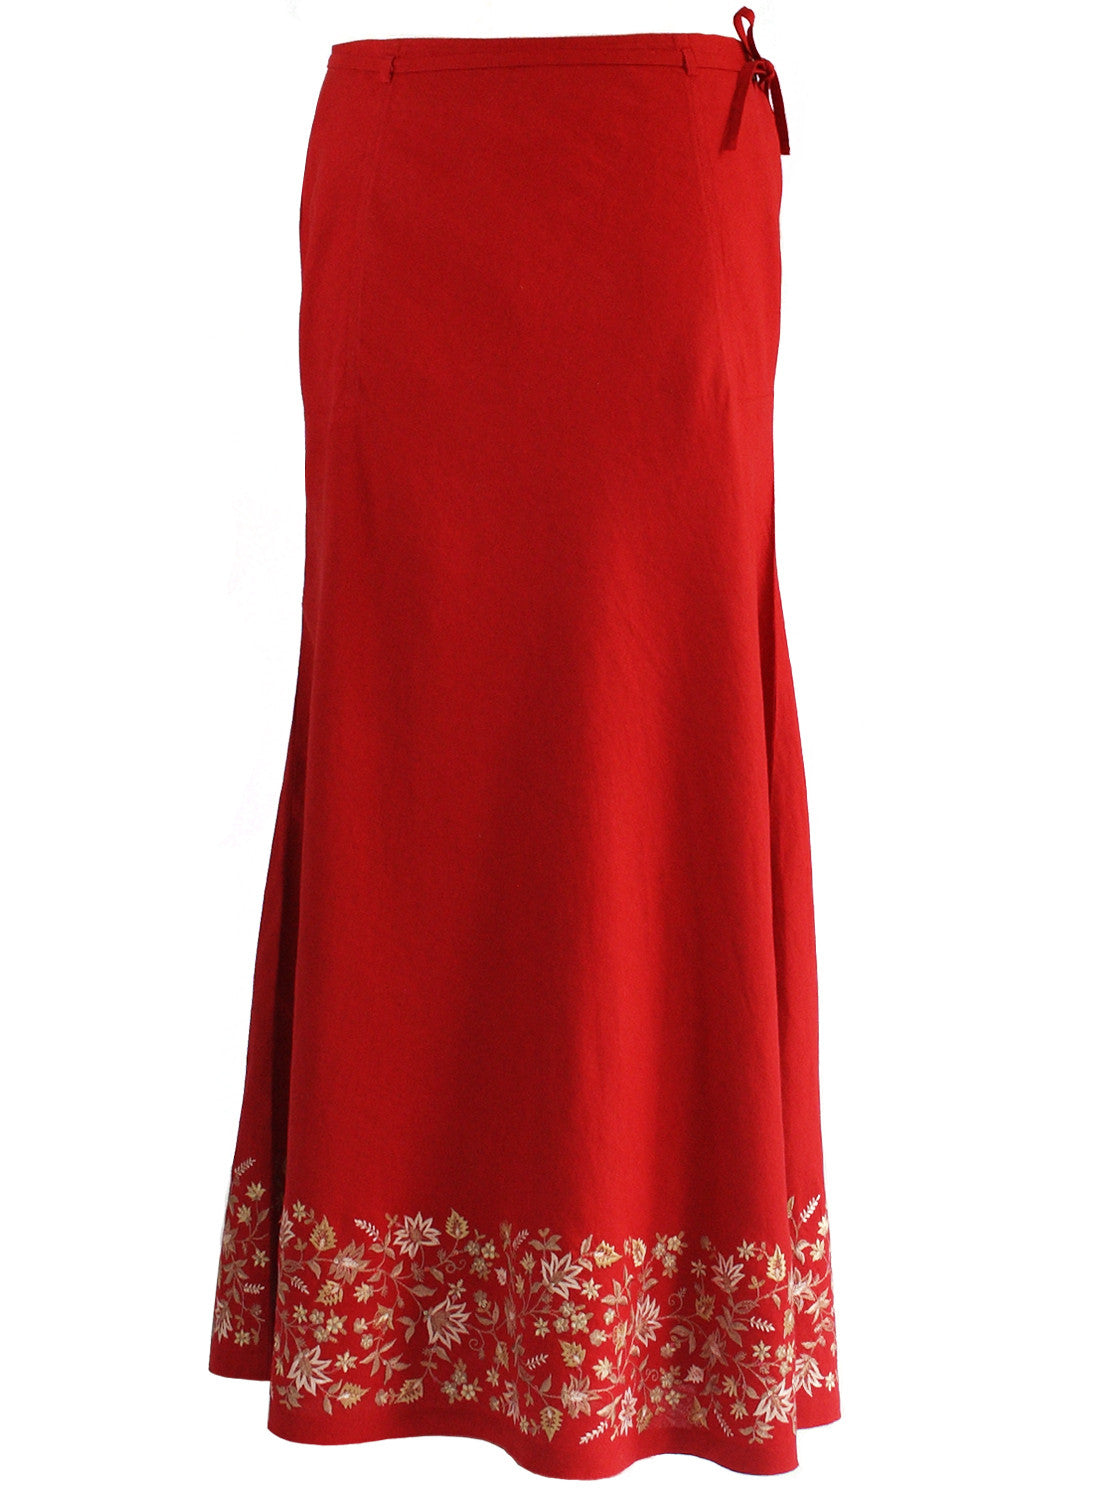 Ankle length Skirt in Red linen with Beige Embroidery - MINC ecofashion